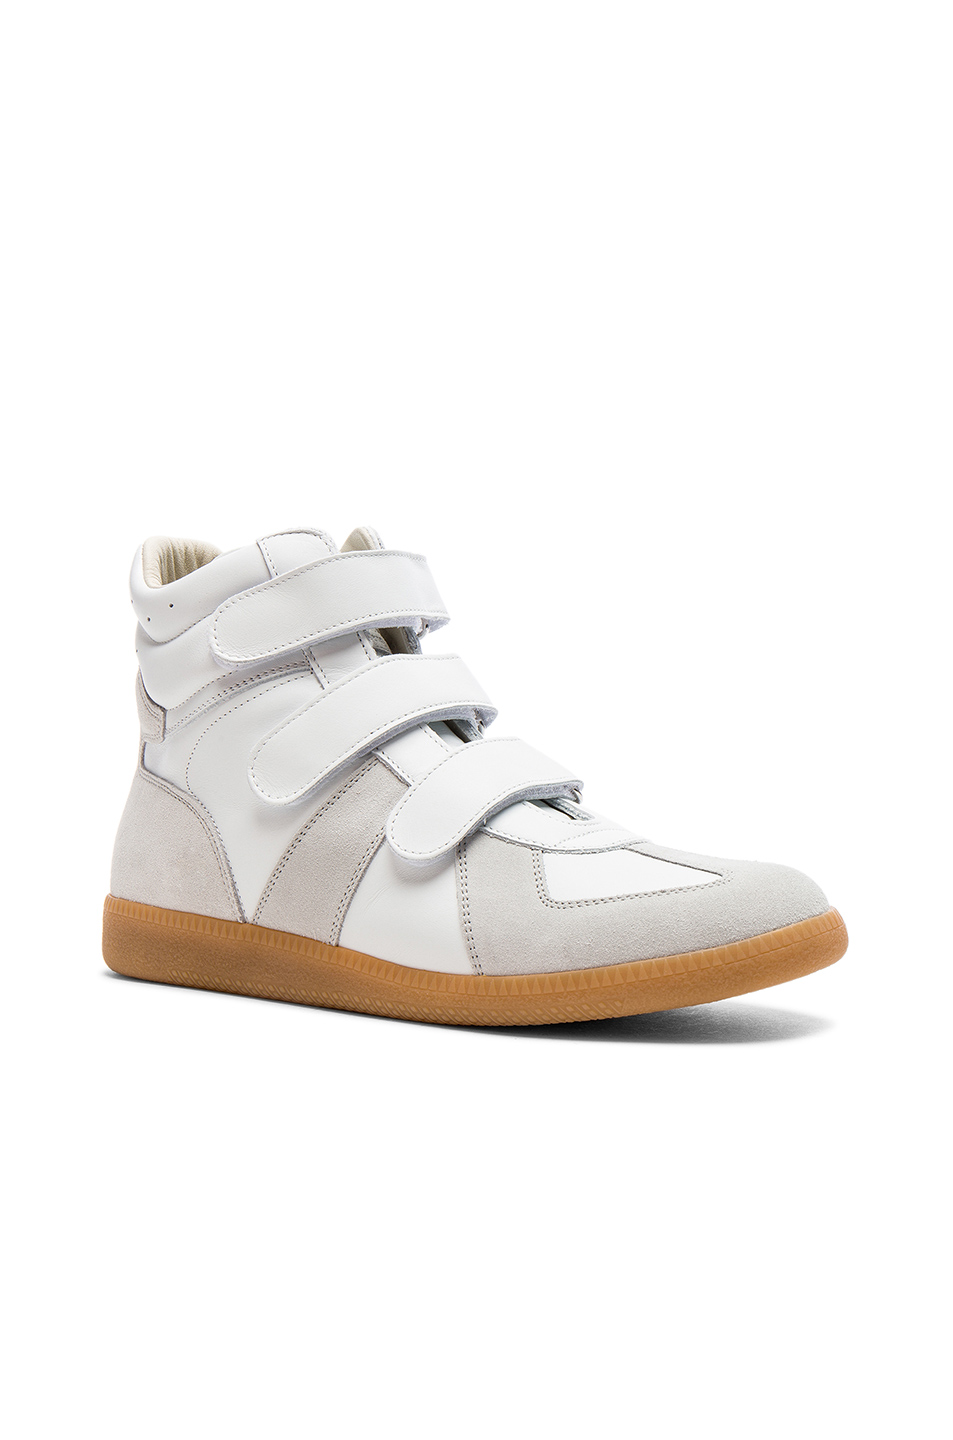 Maison Margiela Calfskin Velcro High Tops in Neutrals,White